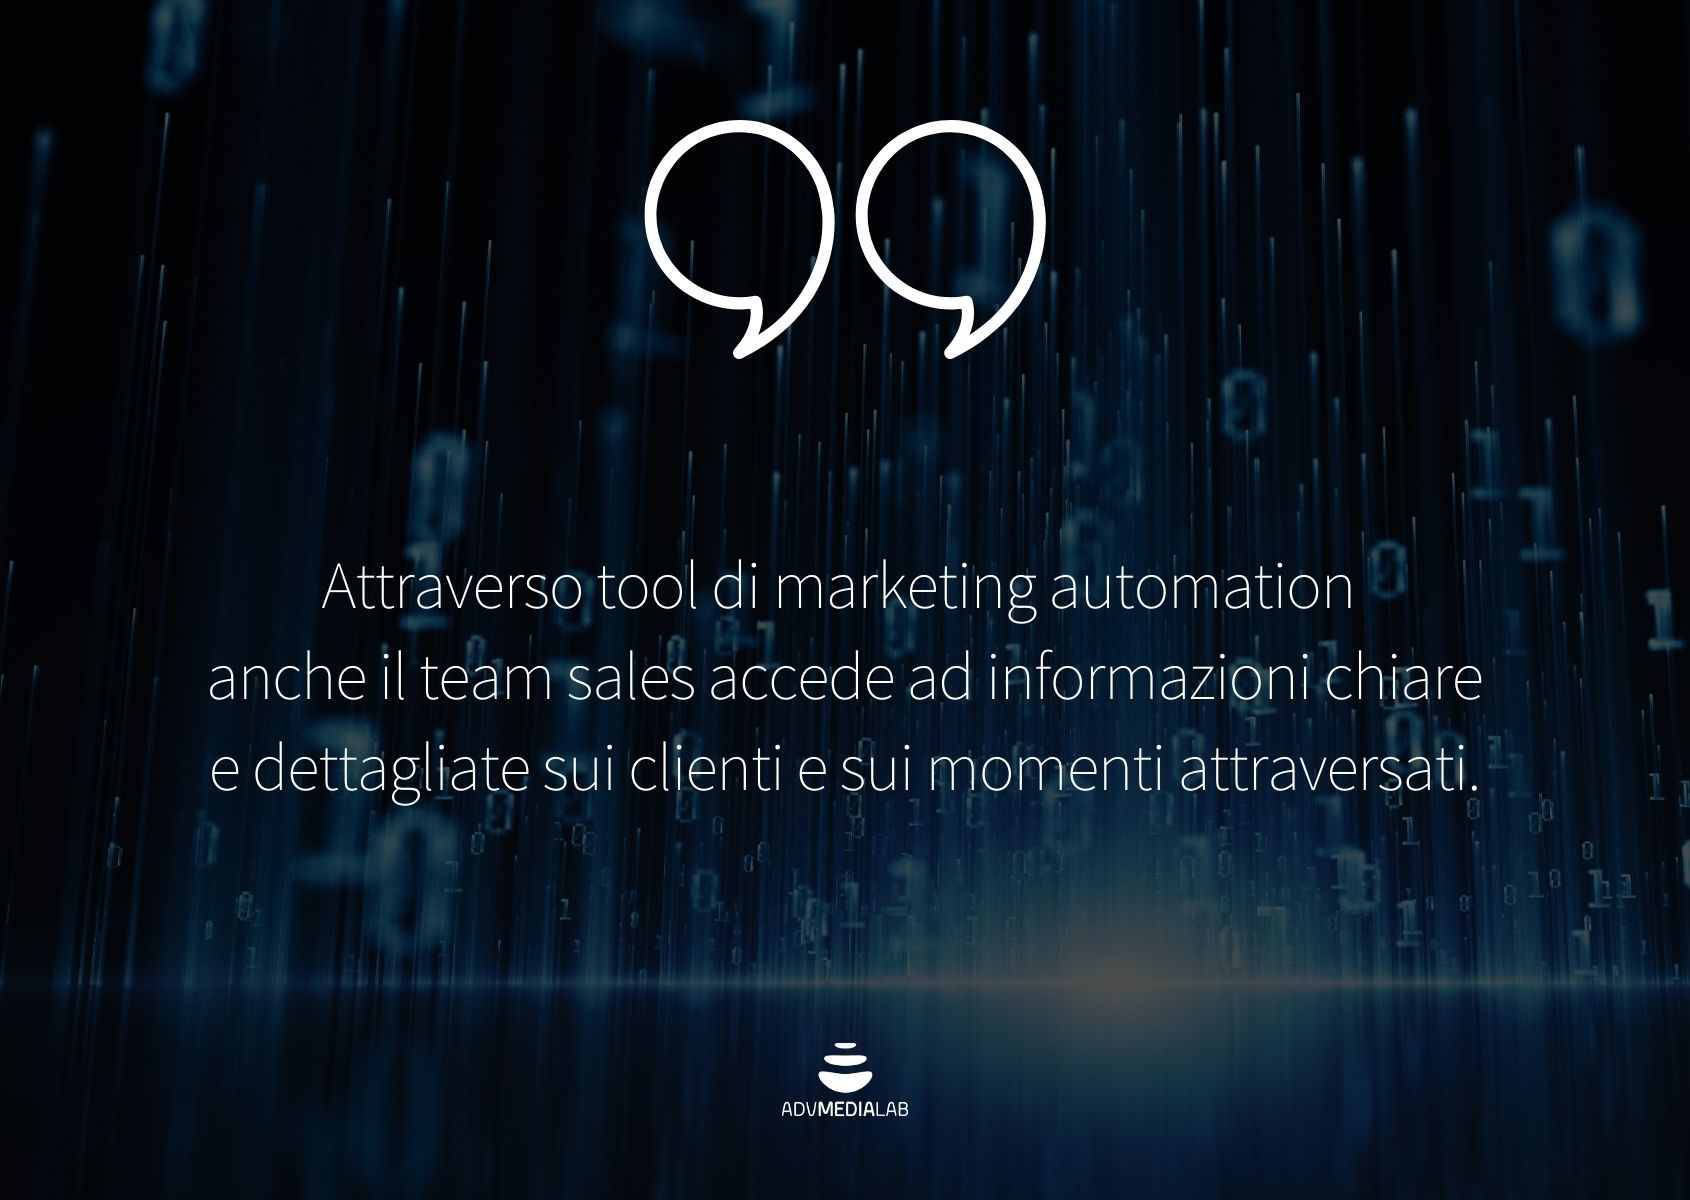 Marketing-automation-2021-quote2